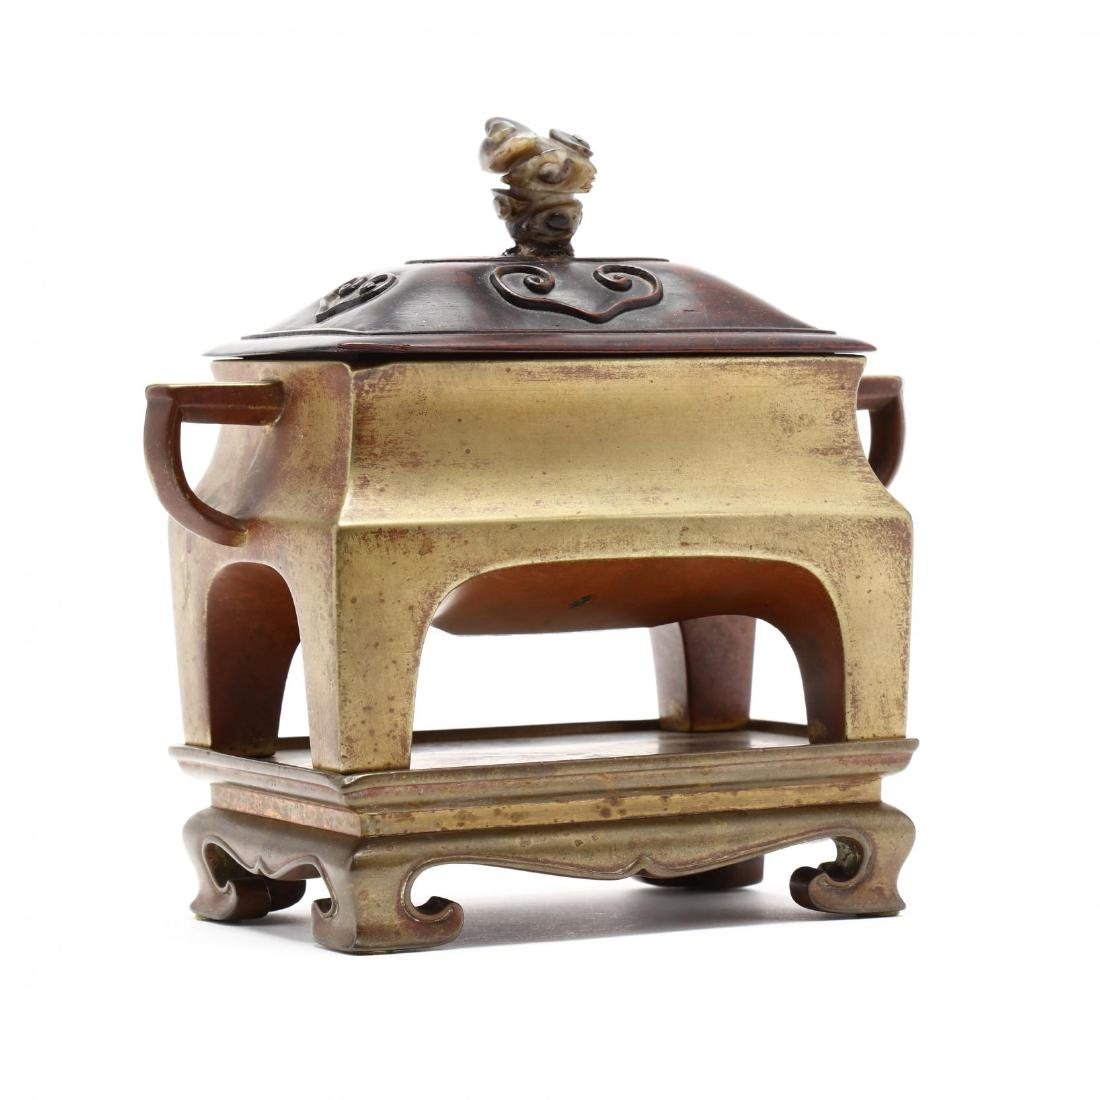 A Chinese Rectangular Bronze Censer with Stand and